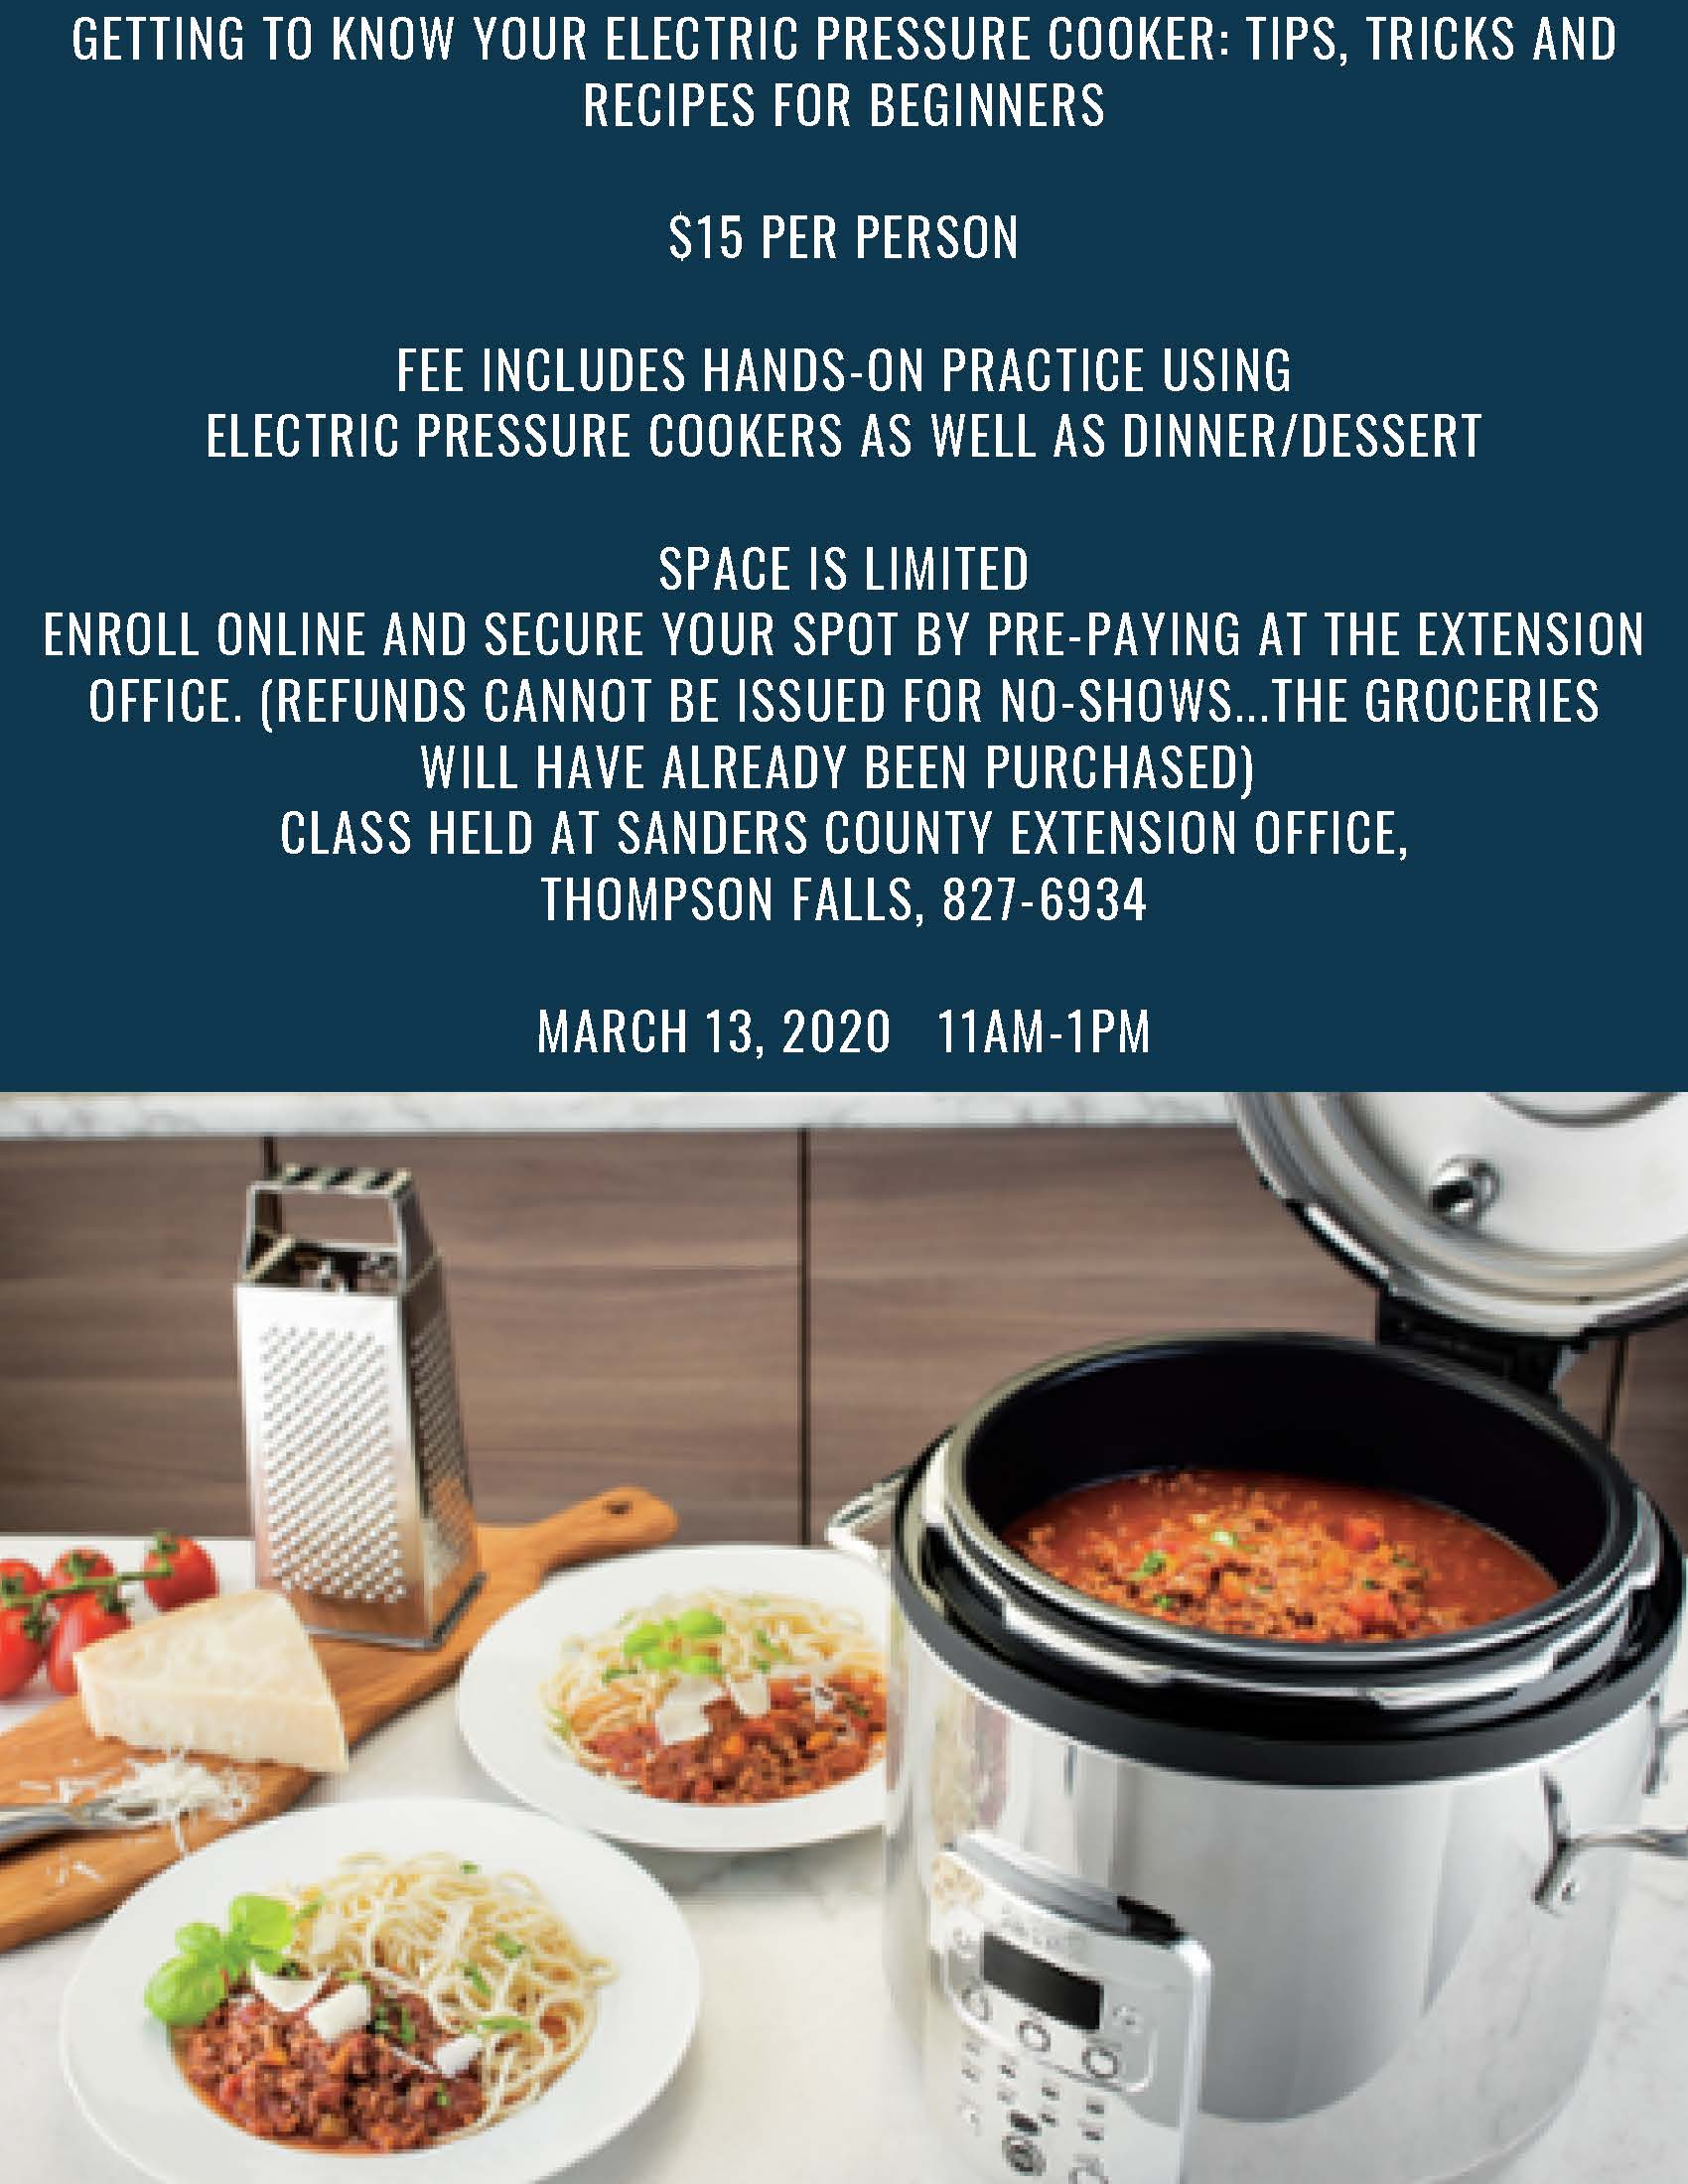 Pressure cooker class march 13